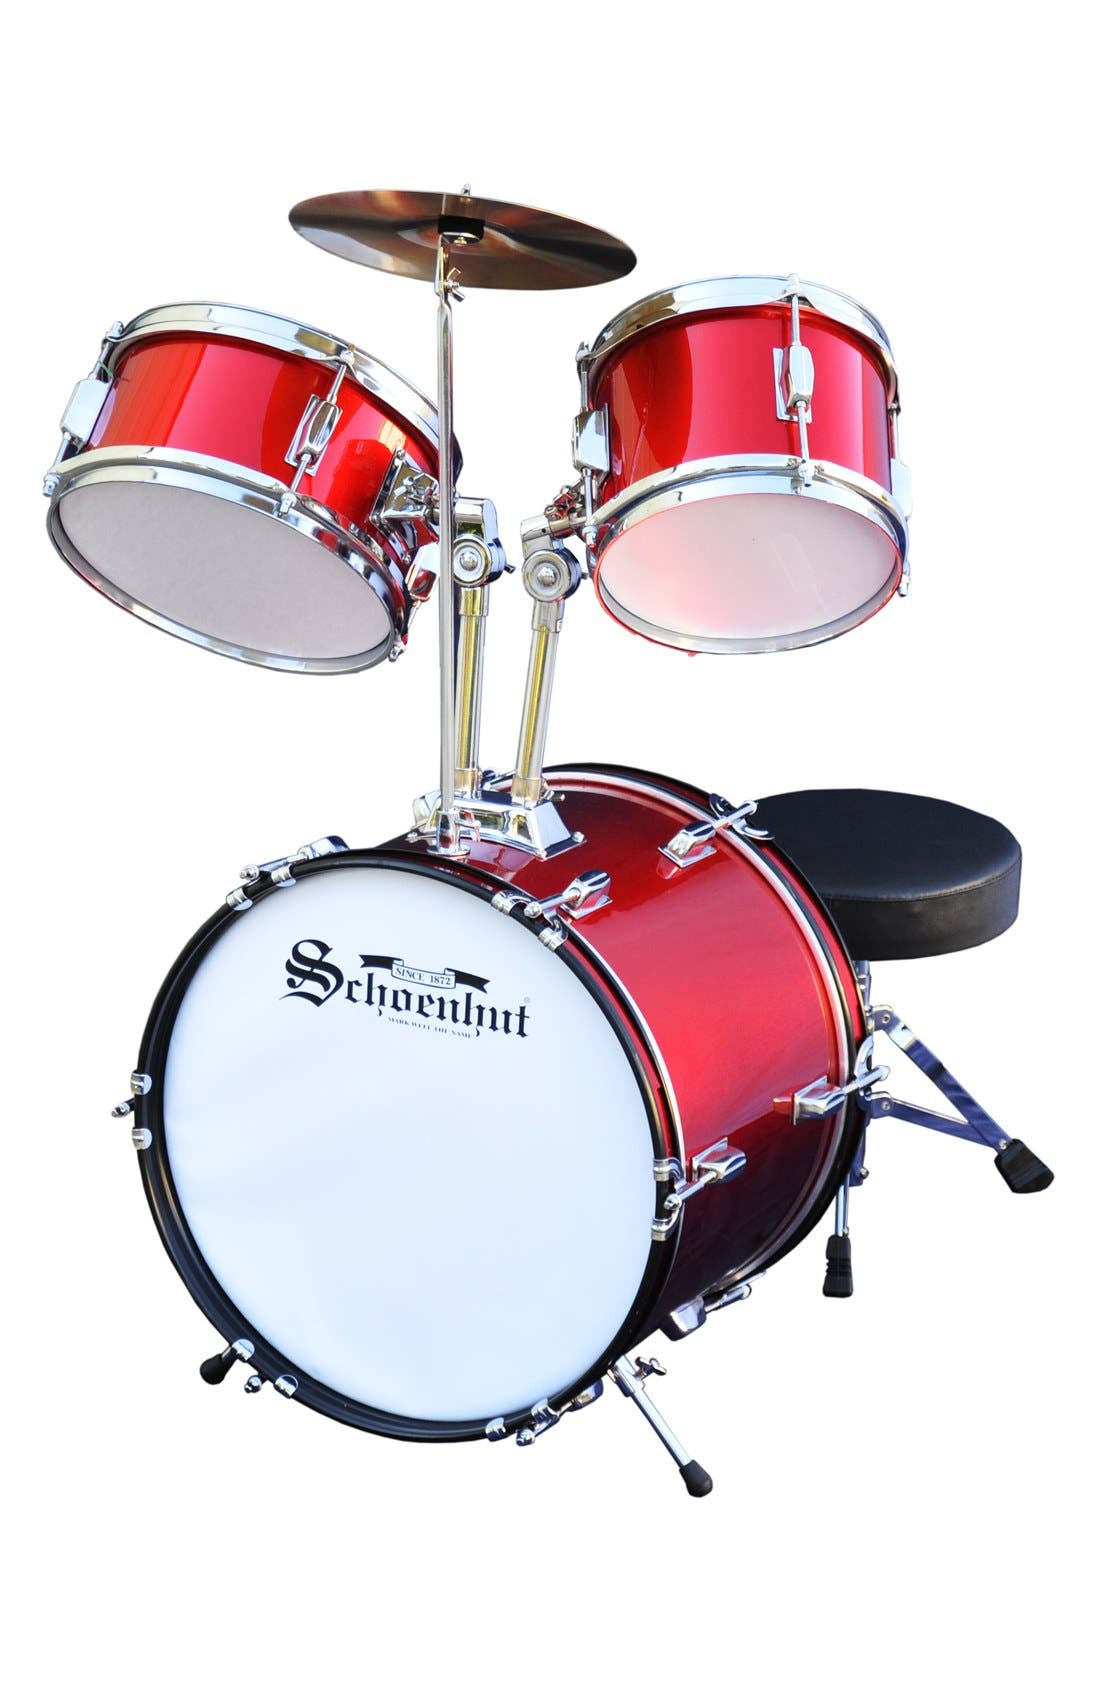 Schoenhut 5-Piece Drum Set